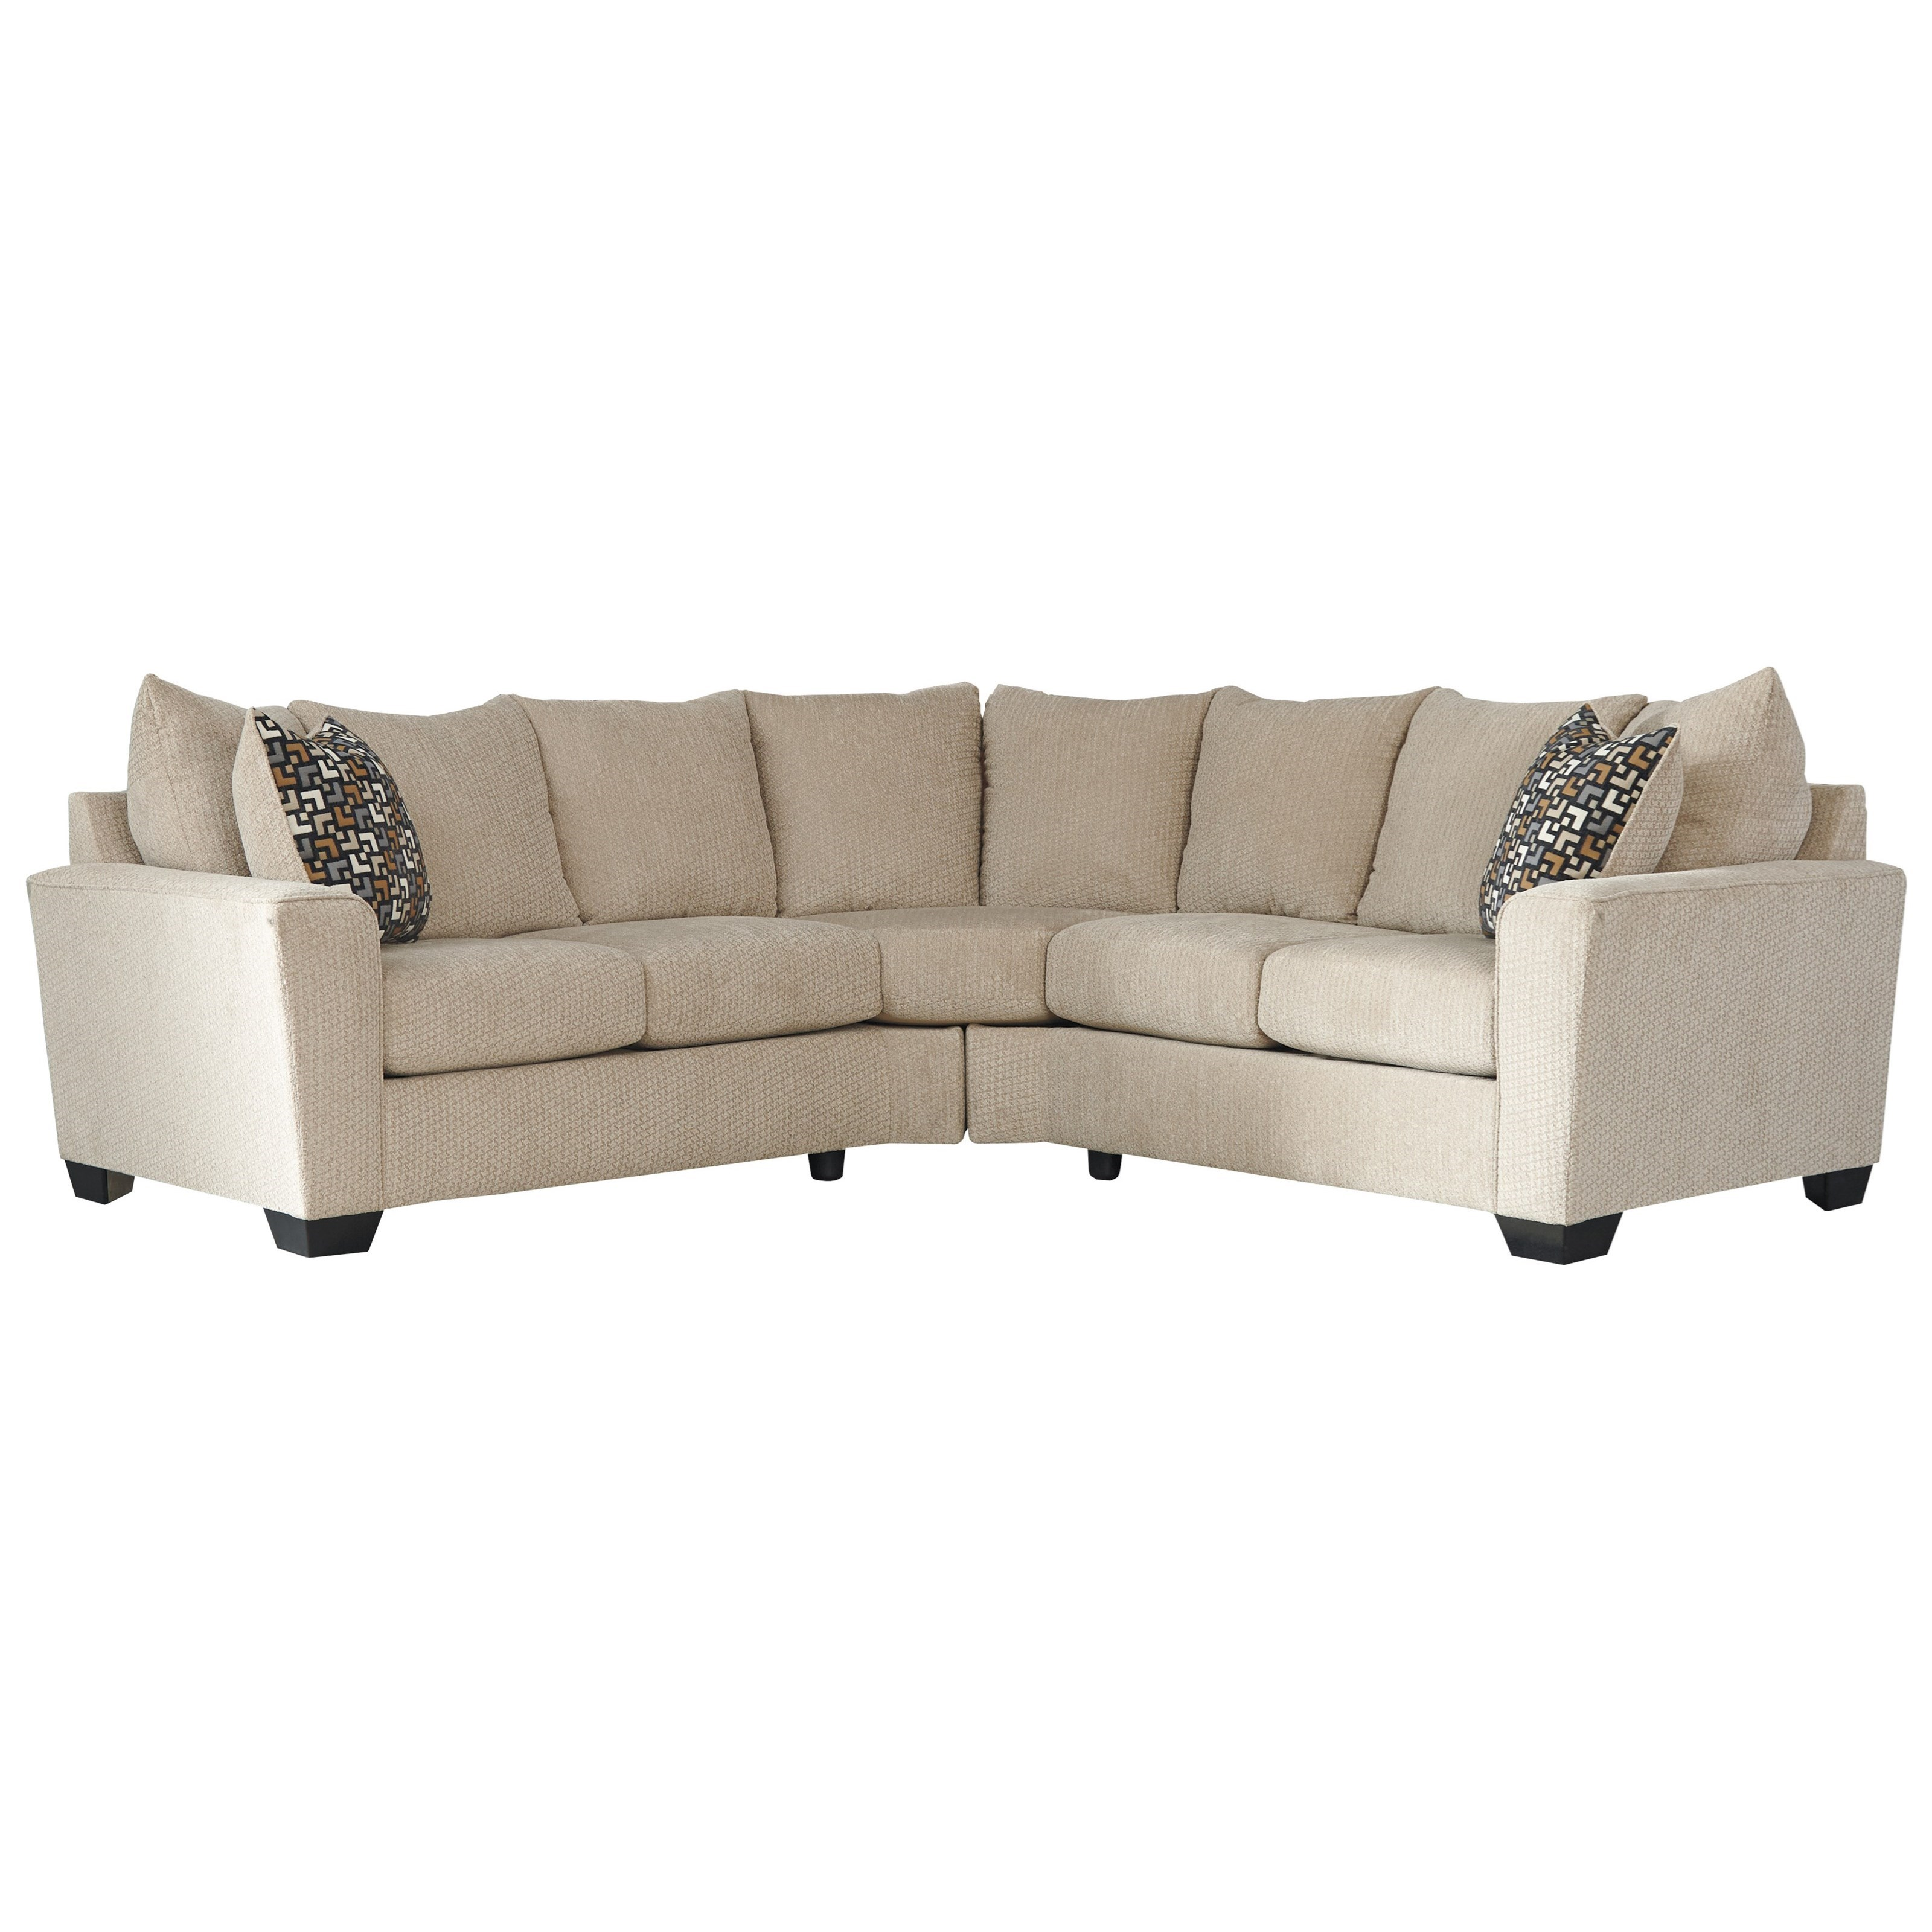 Benchcraft Wixon 2 Piece Corner Sectional With Rounded Track Arms Dunk Bright Furniture